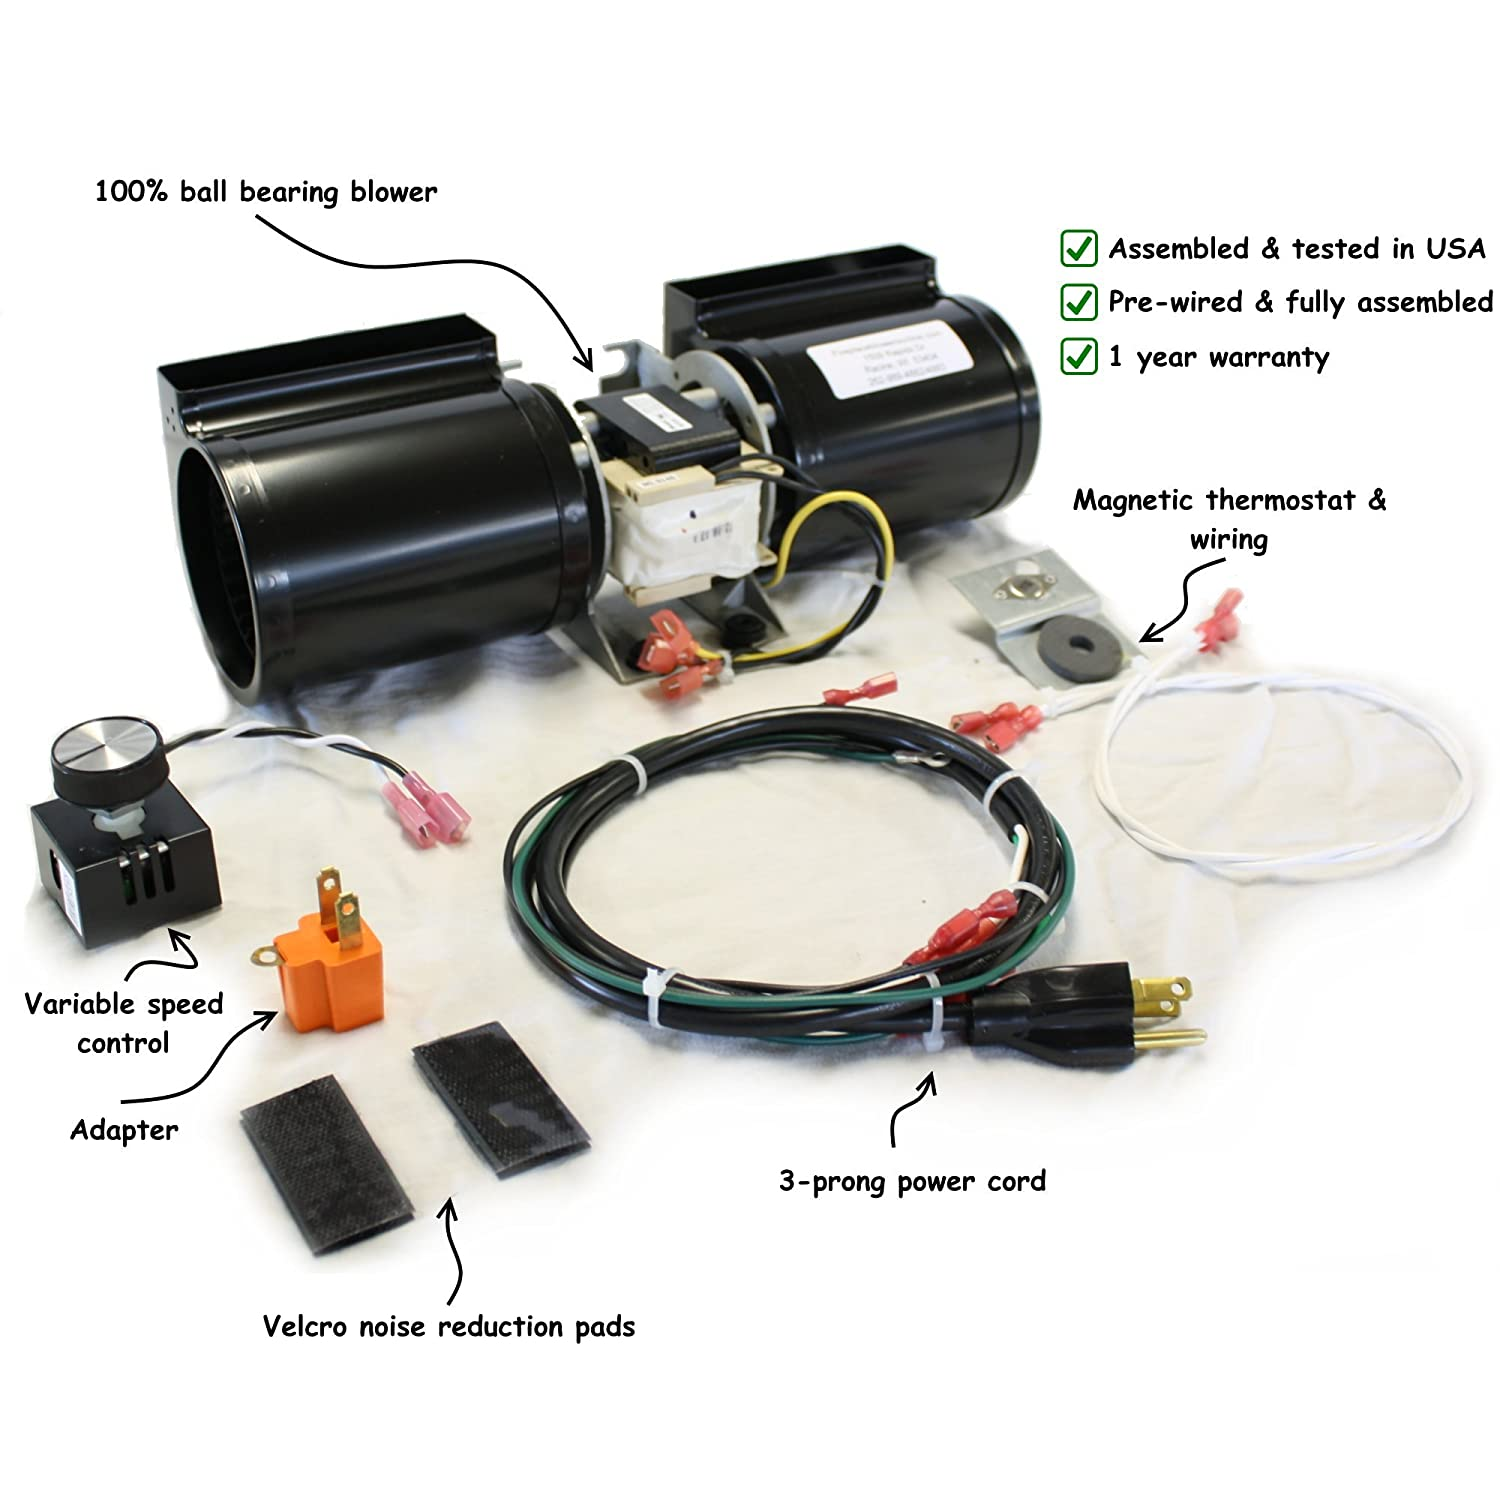 Amazon.com: GFK-160 Fireplace Blower Kit for Heat N Glo, Hearth and Home, Quadra  Fire: Home & Kitchen